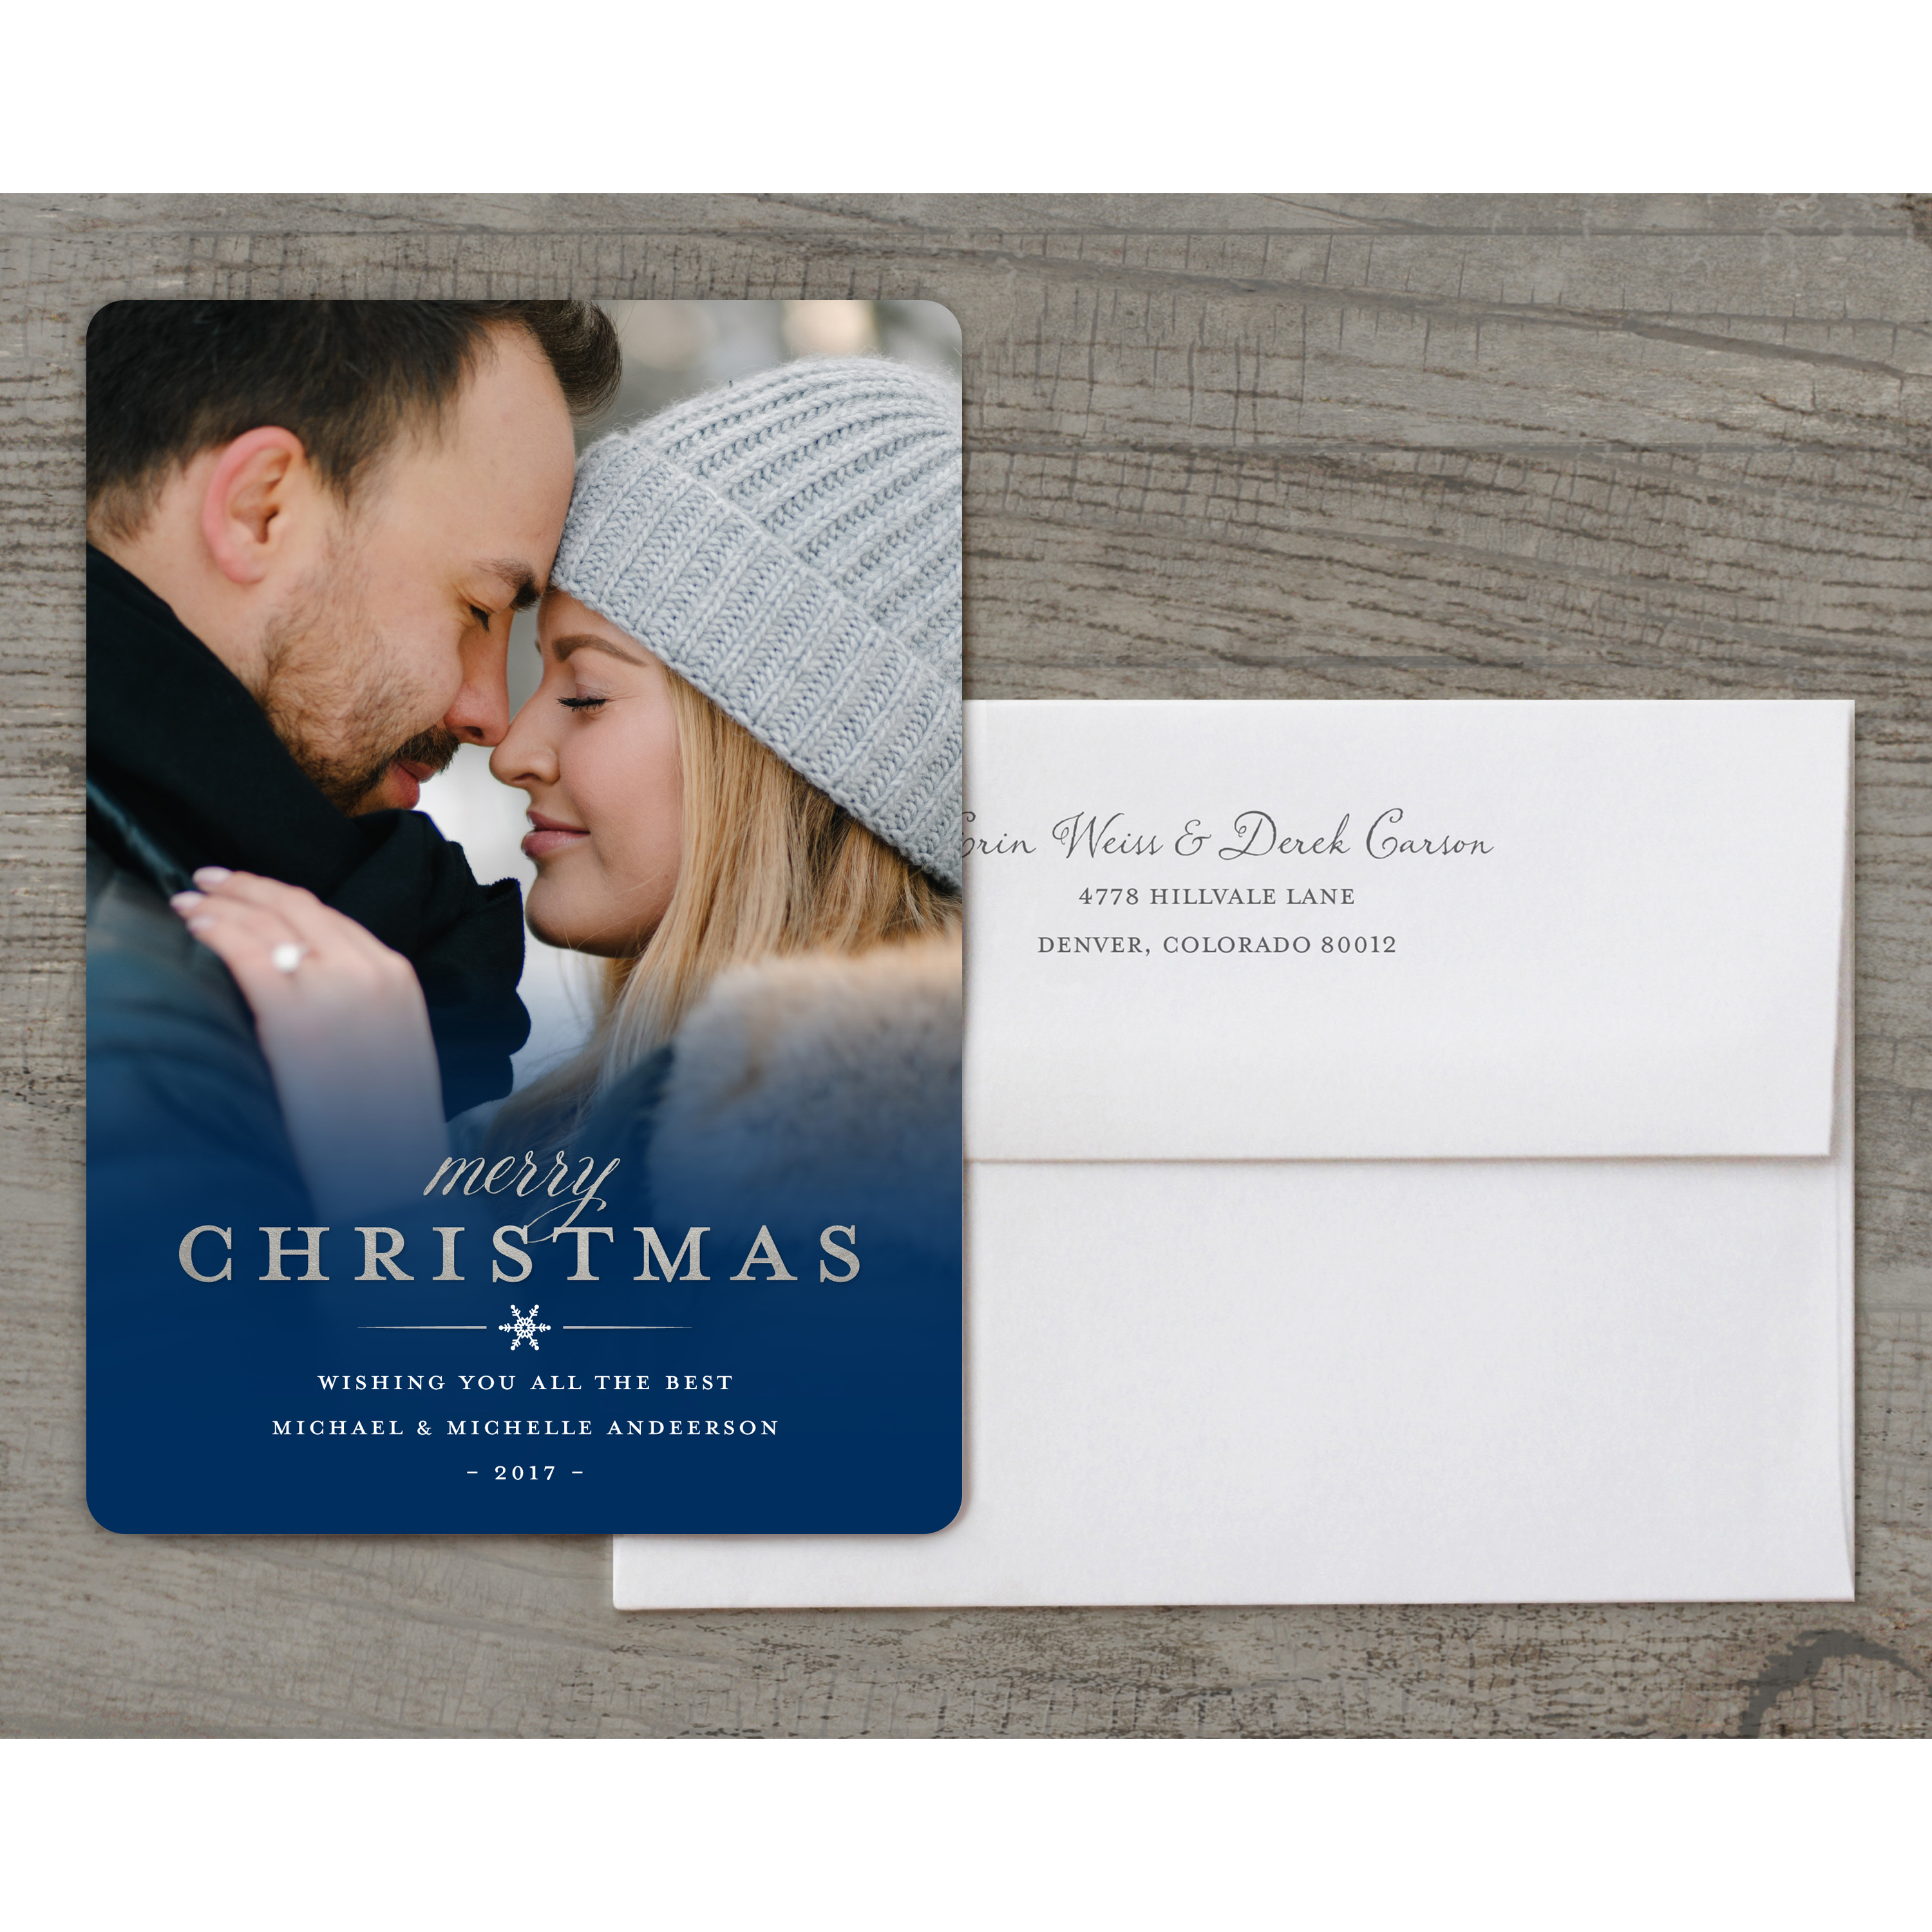 Luxe Foil - Deluxe 5x7 Personalized Holiday Christmas Card